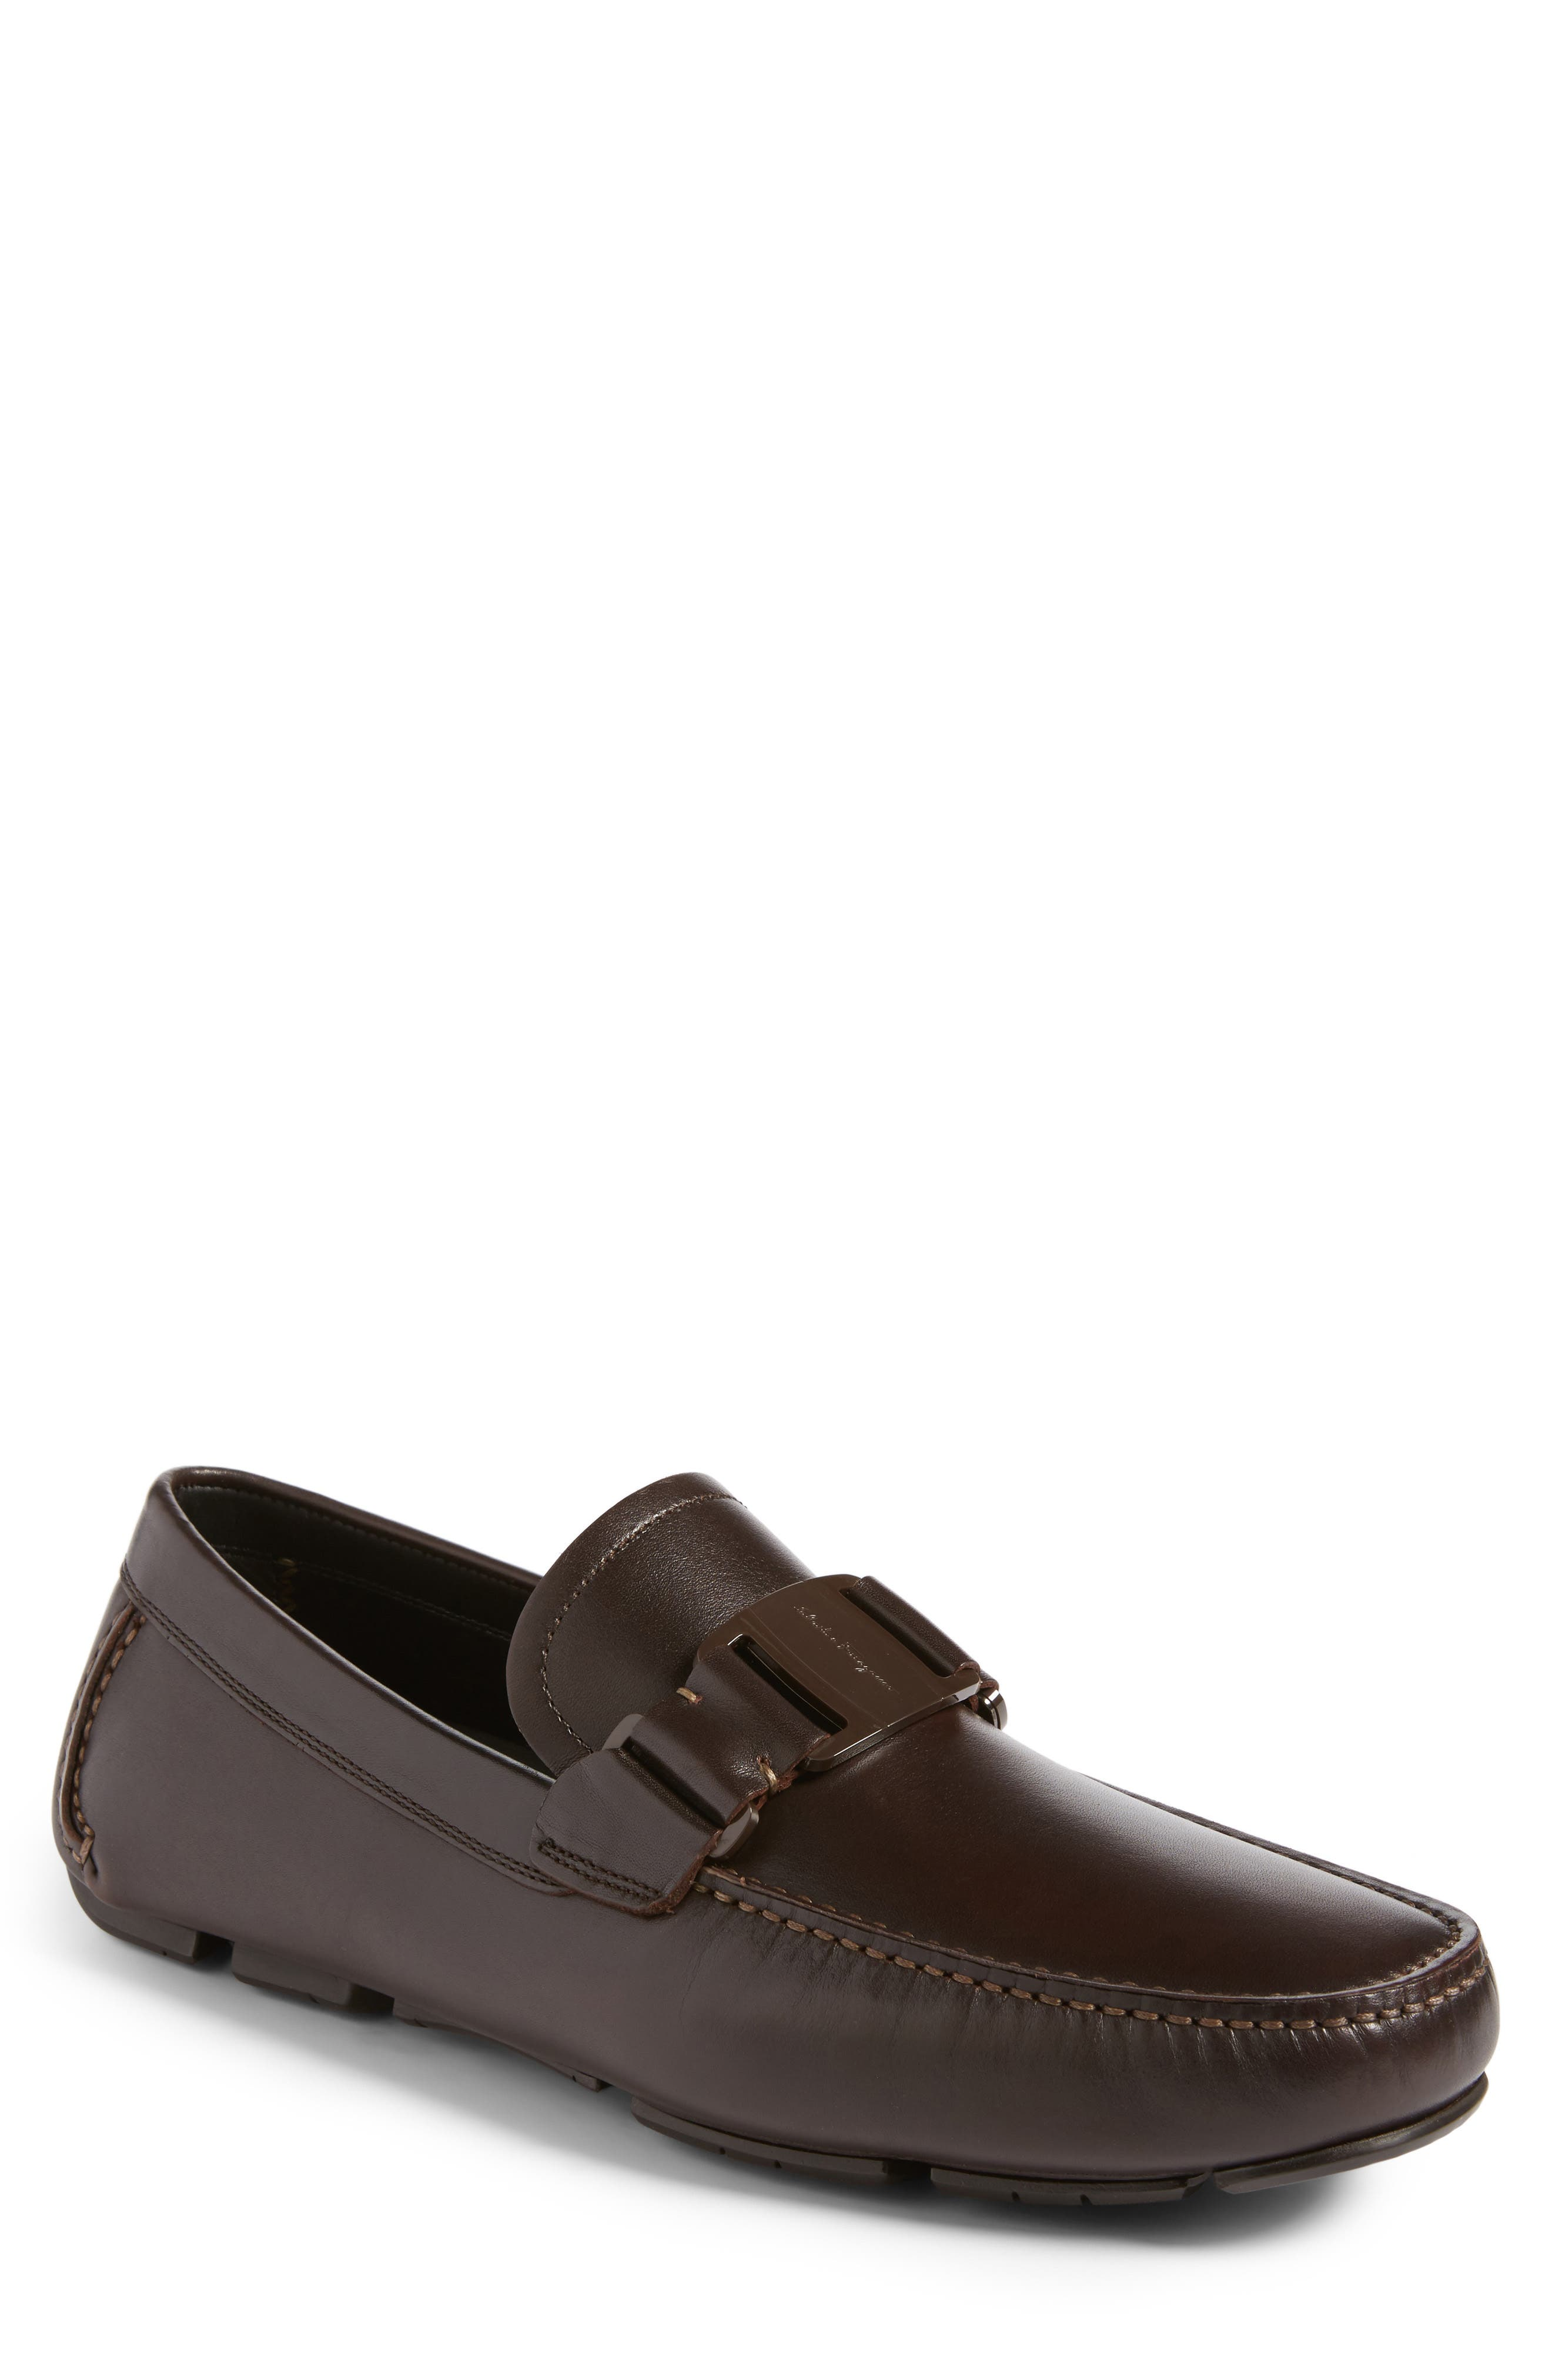 Salvatore Ferragamo 'Sardegna' Driving Shoe (Men)